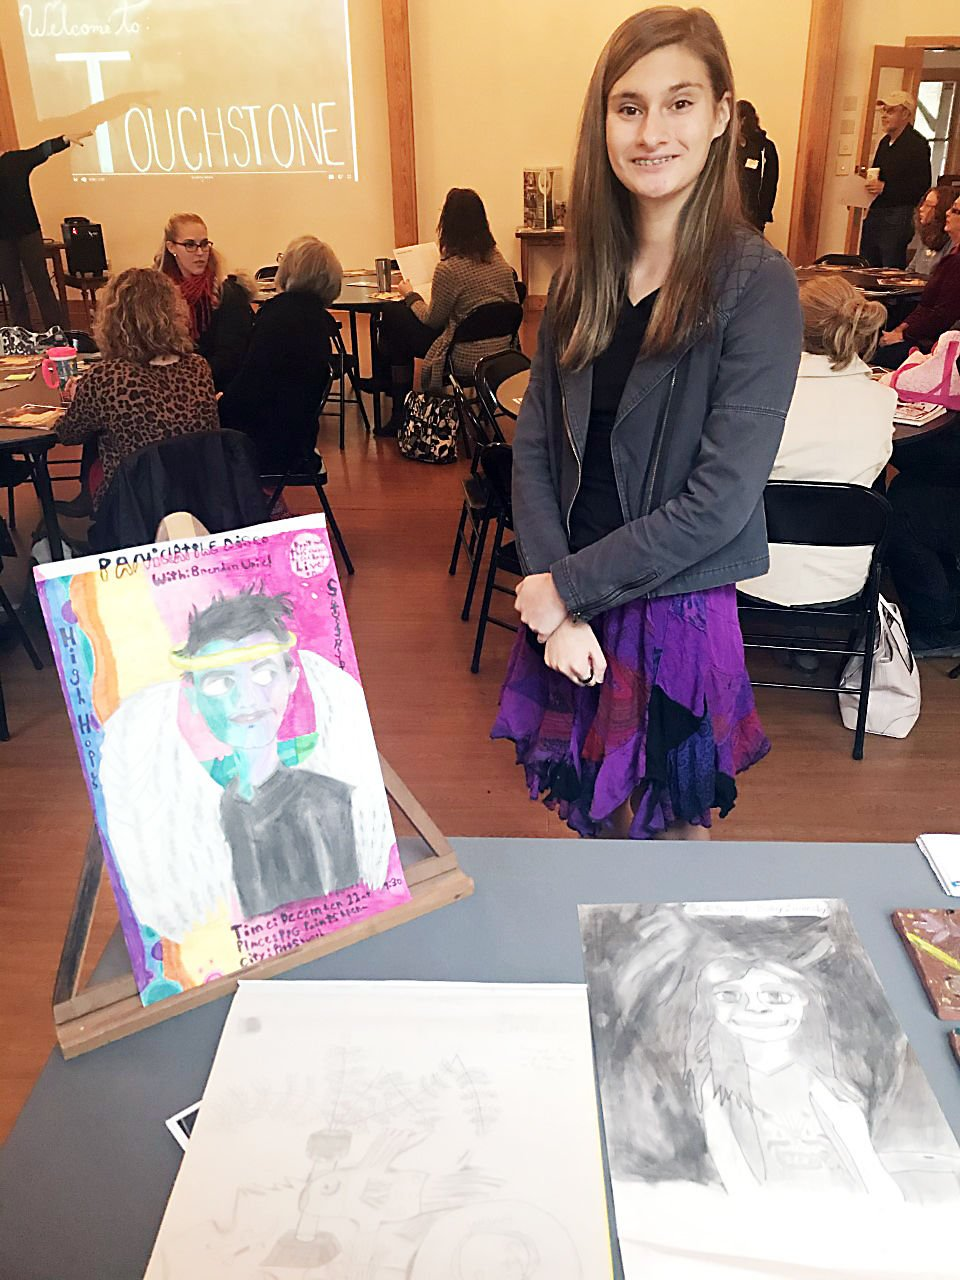 Art center and educators team up to highlight benefits of art in education